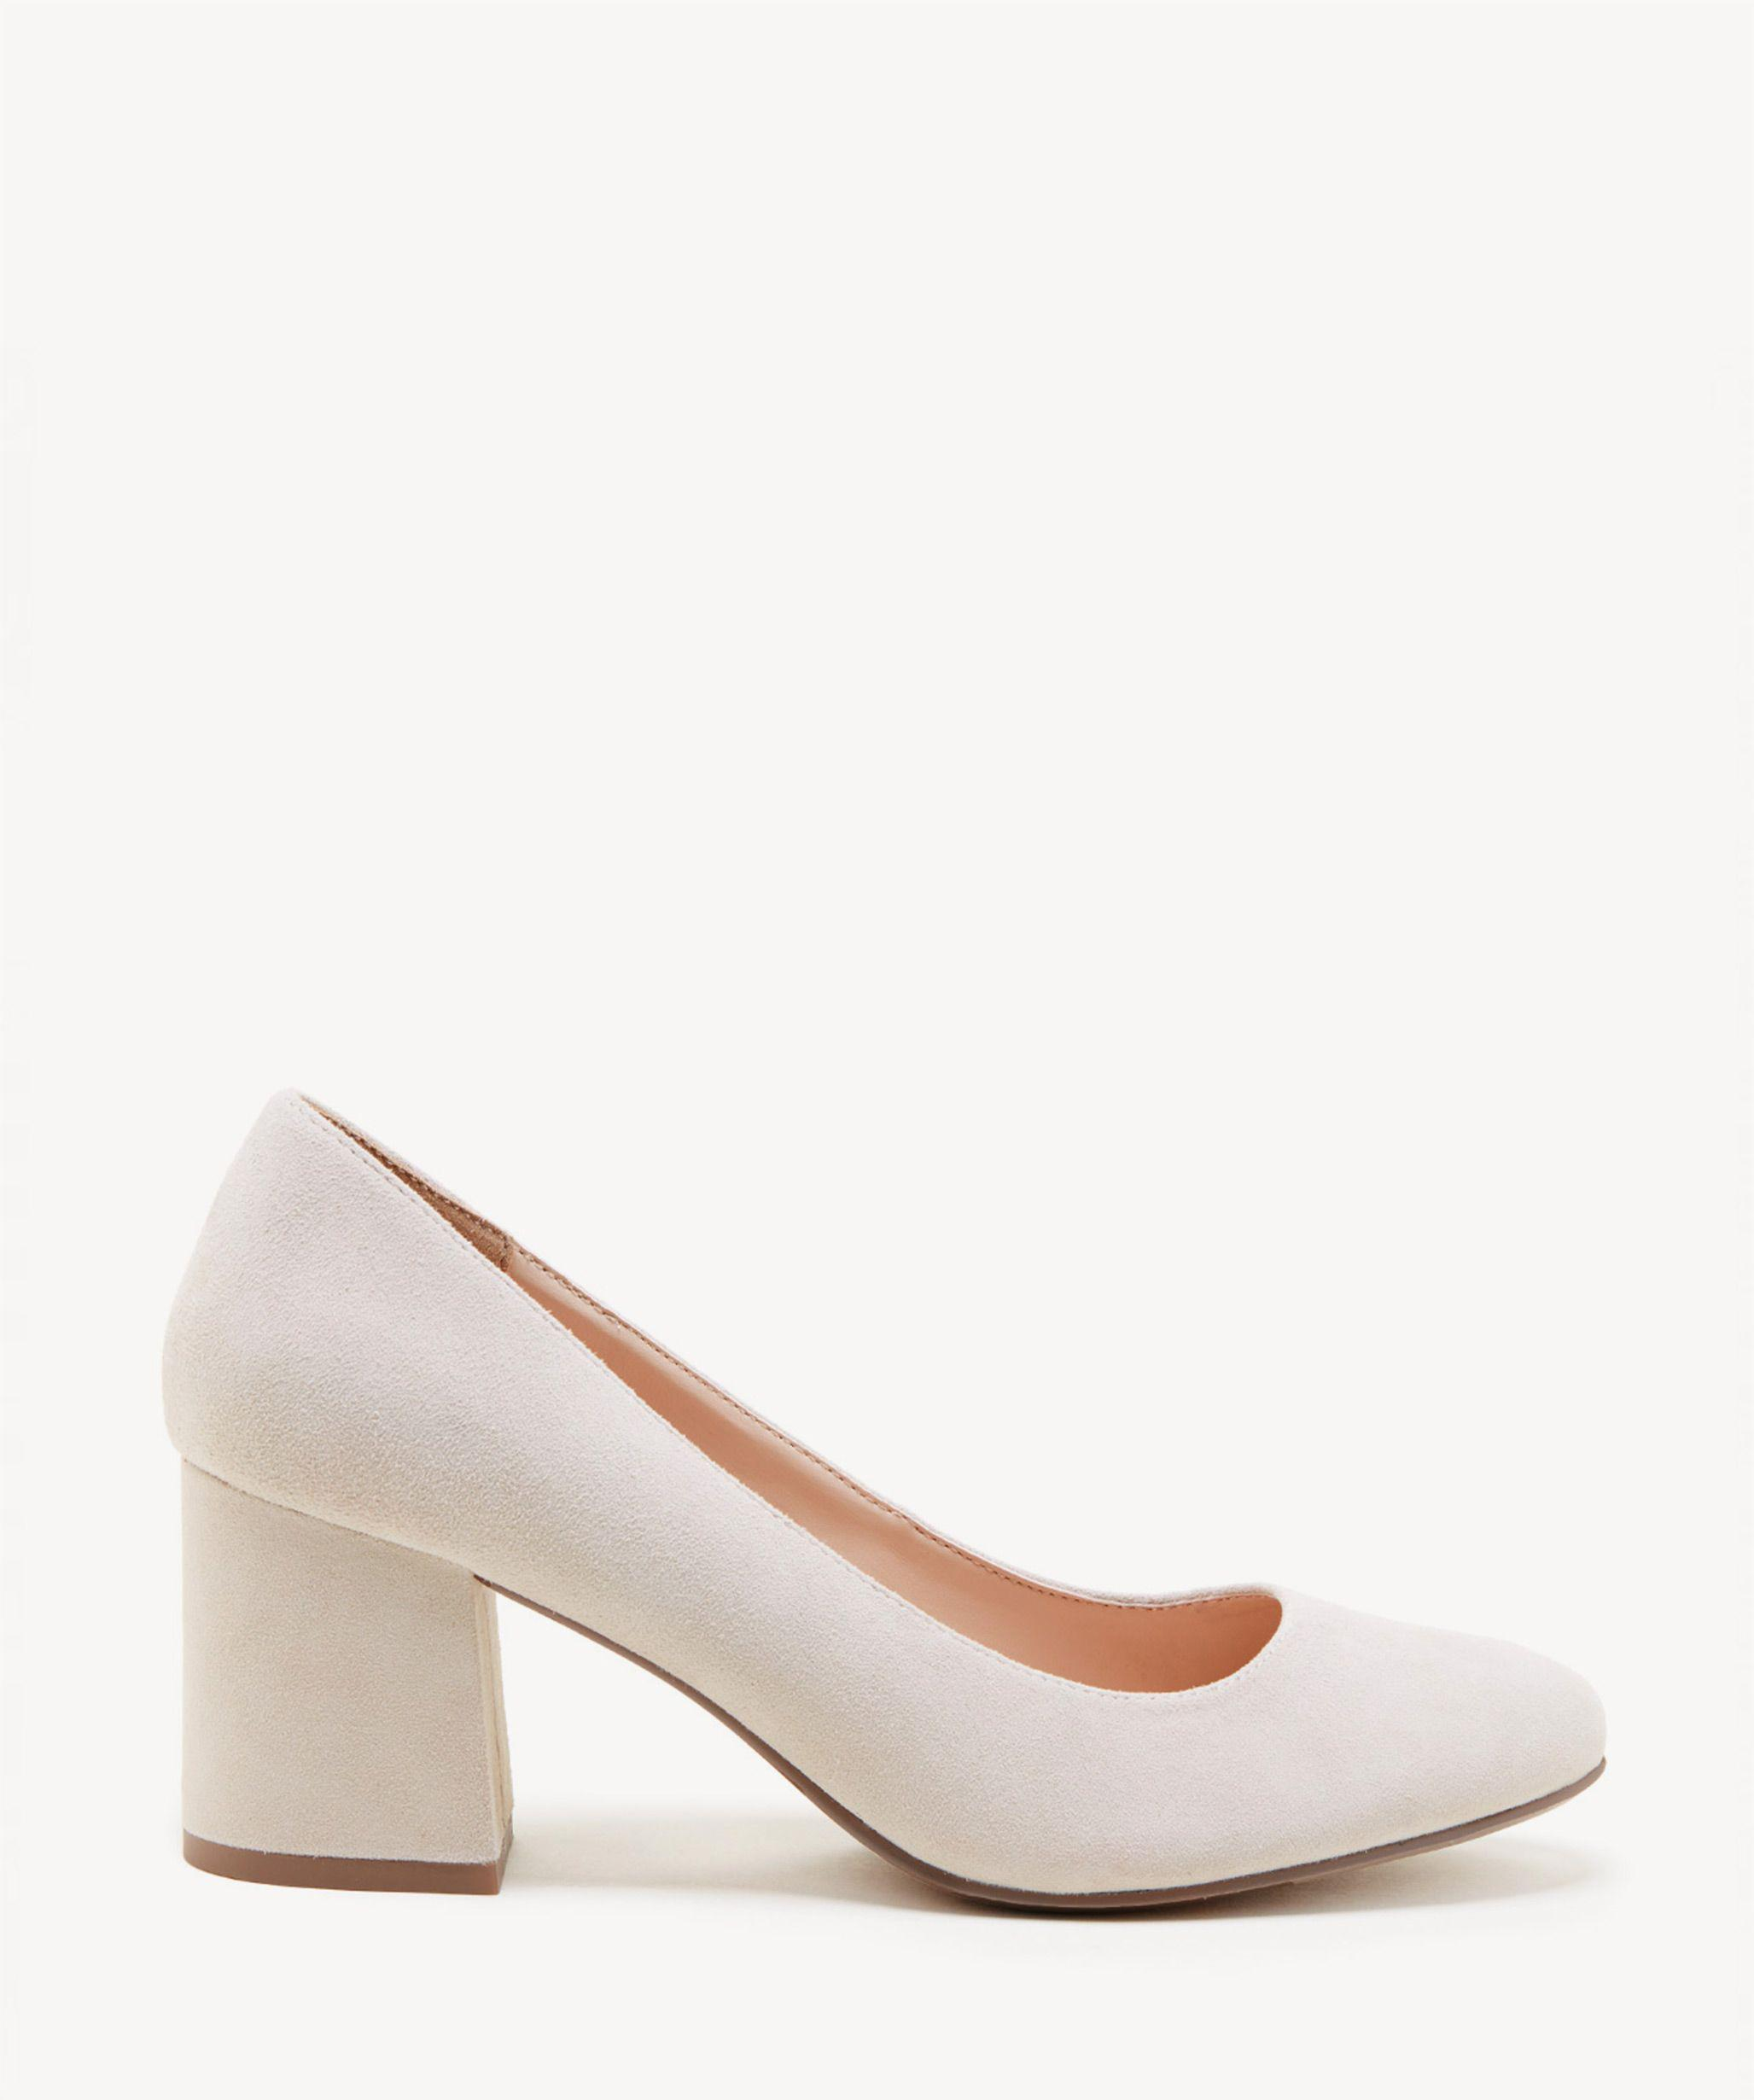 Lola Block Heel Pumps